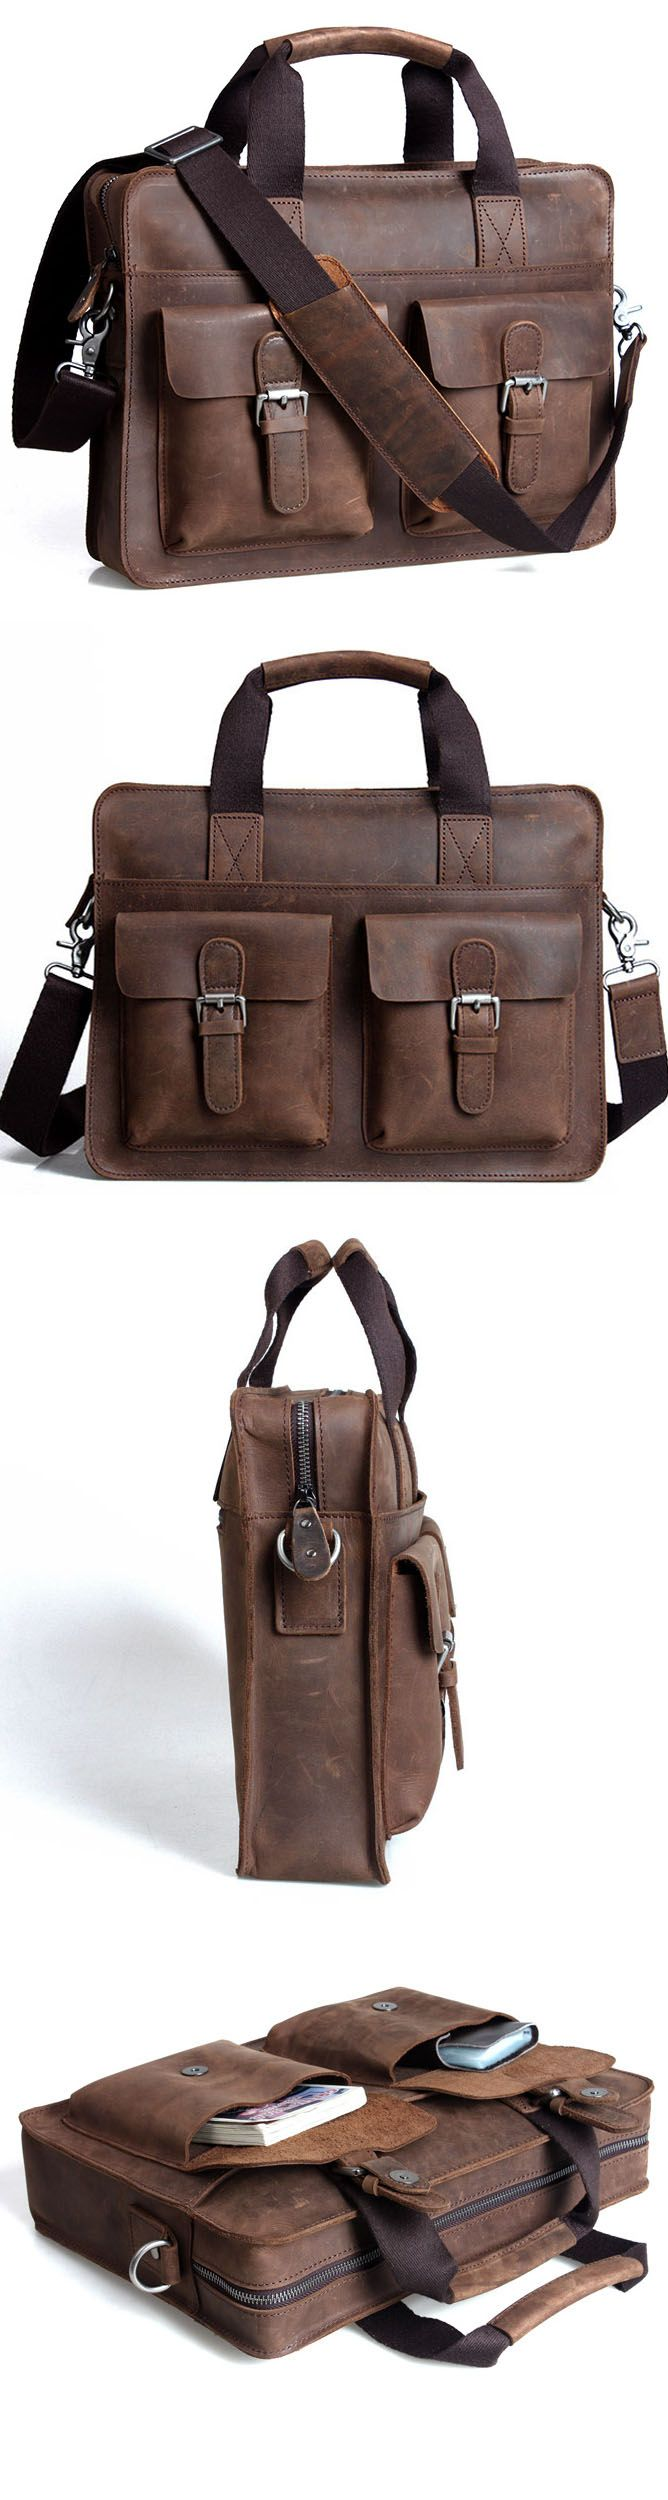 best gift for him: messenger & briefcase